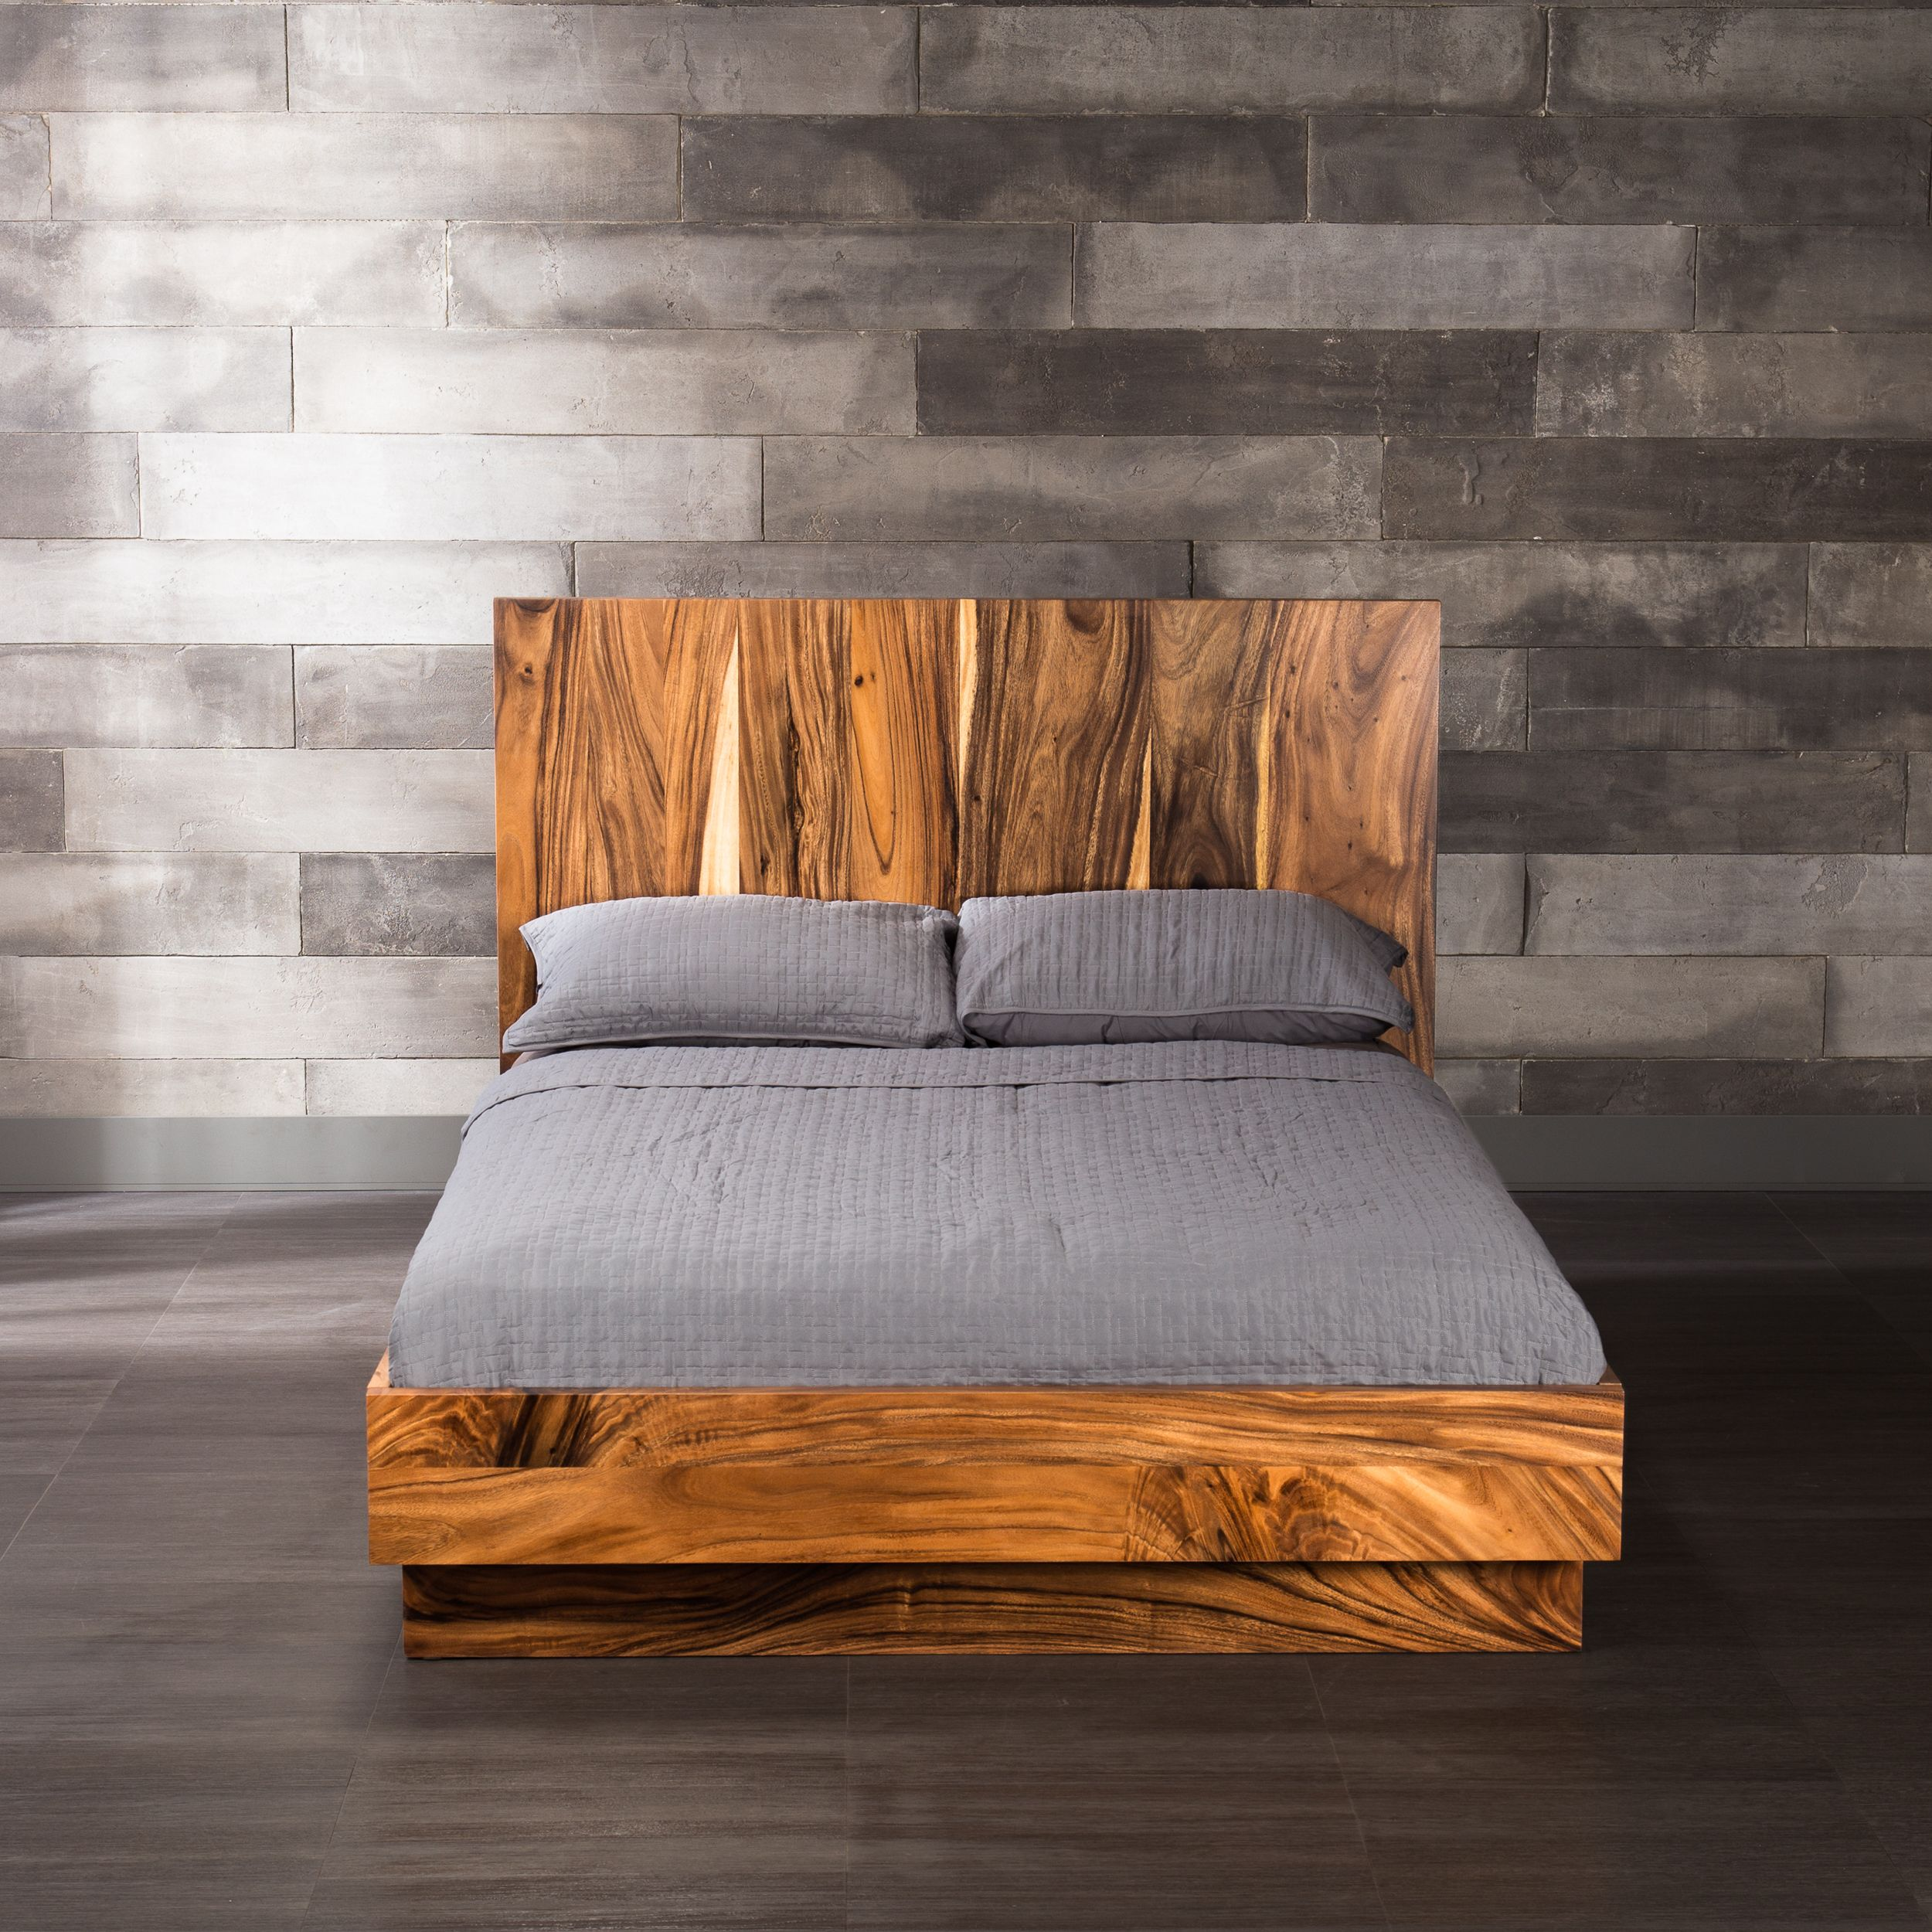 Falling Into Dreams Is Easy Thanks To This Suar Bed That Handmade In Thailand